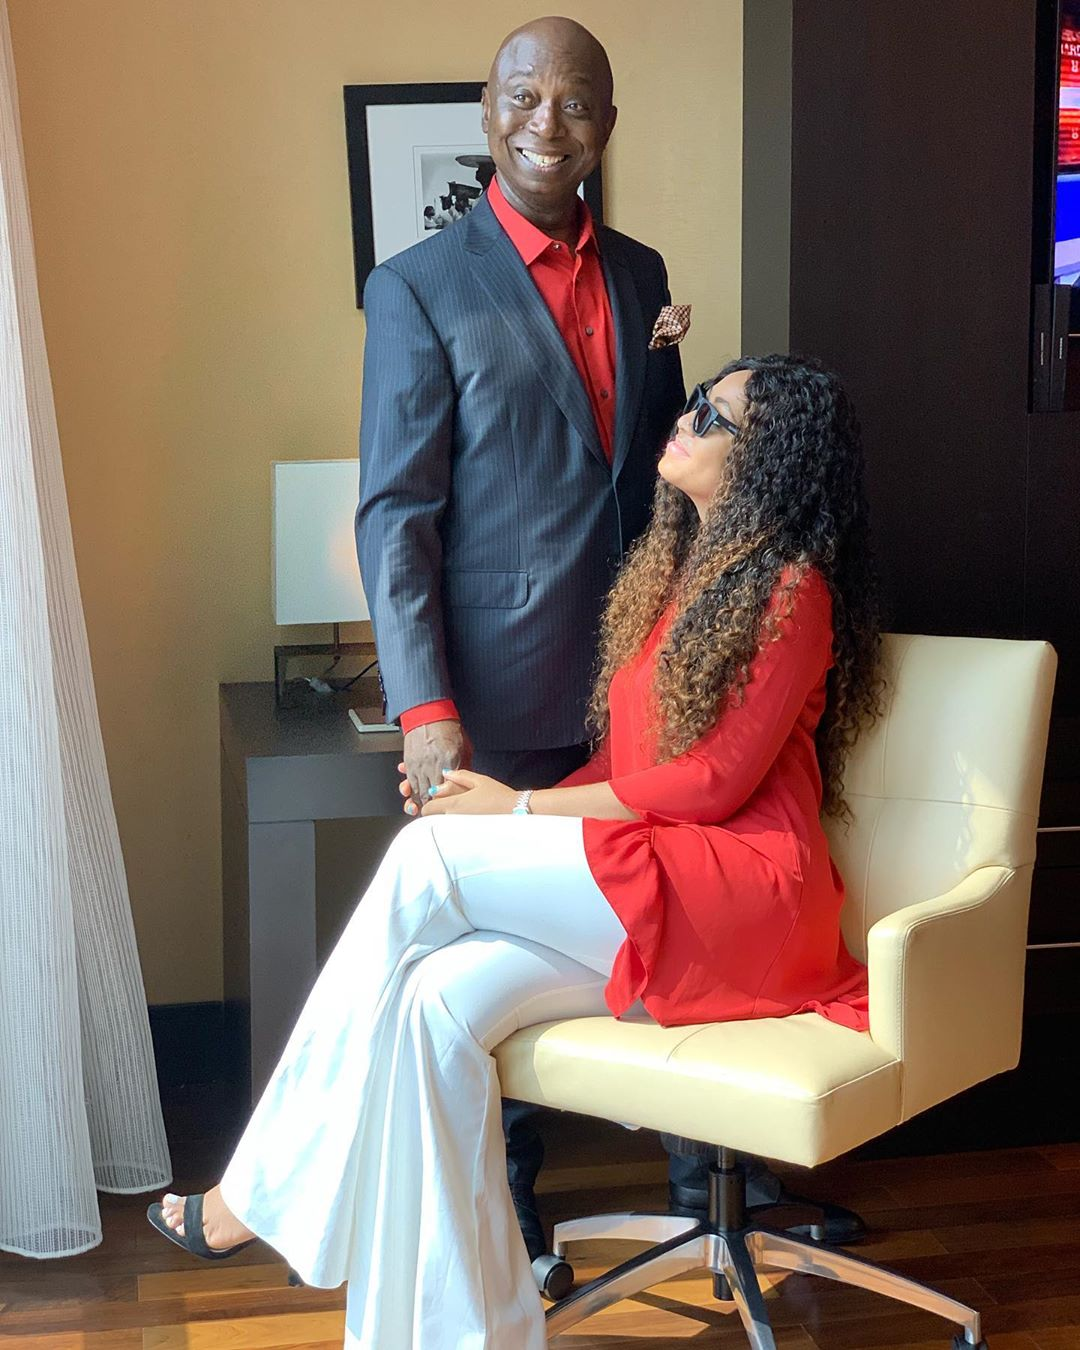 Check out the Photos of Regina Daniels & Ned Nwoko that Got People's Attention